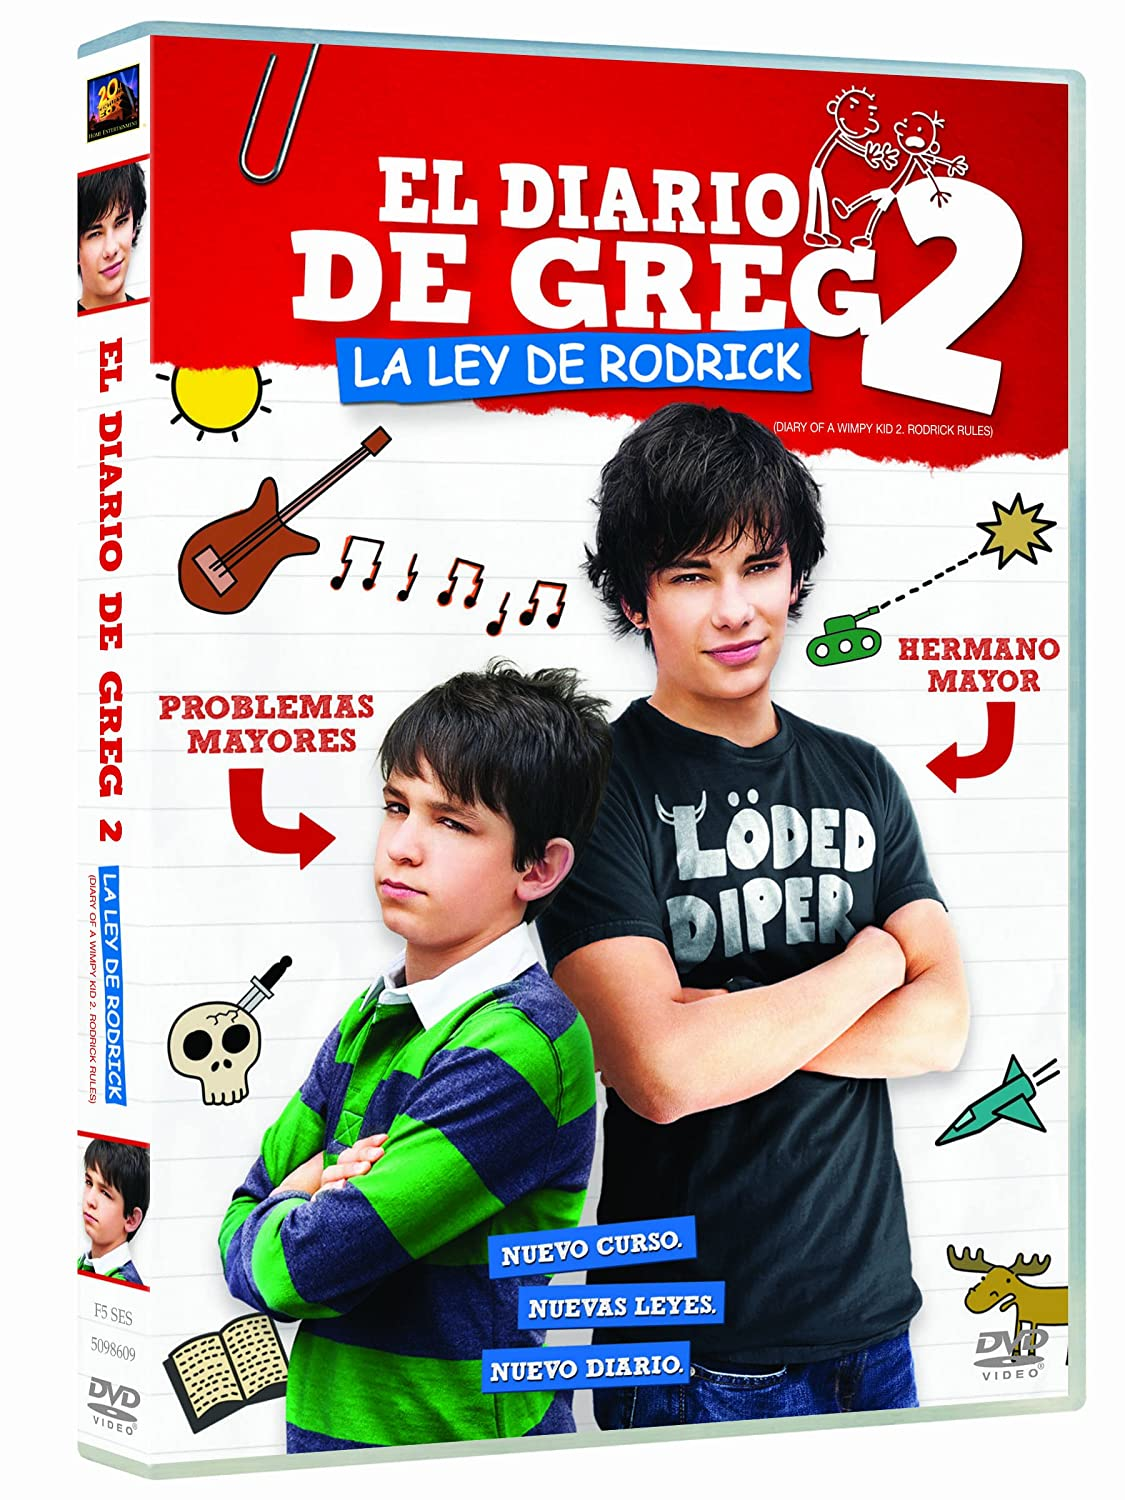 El Diario De Greg 2 La Ley De Rodrick Dvd Amazon Es Zachary Gordon Devon Bostick Rachael Harris Robert Capron Steve Zahn David Bowers Zachary Gordon Devon Bostick Nina Jacobson Bradford Simpson Jeff